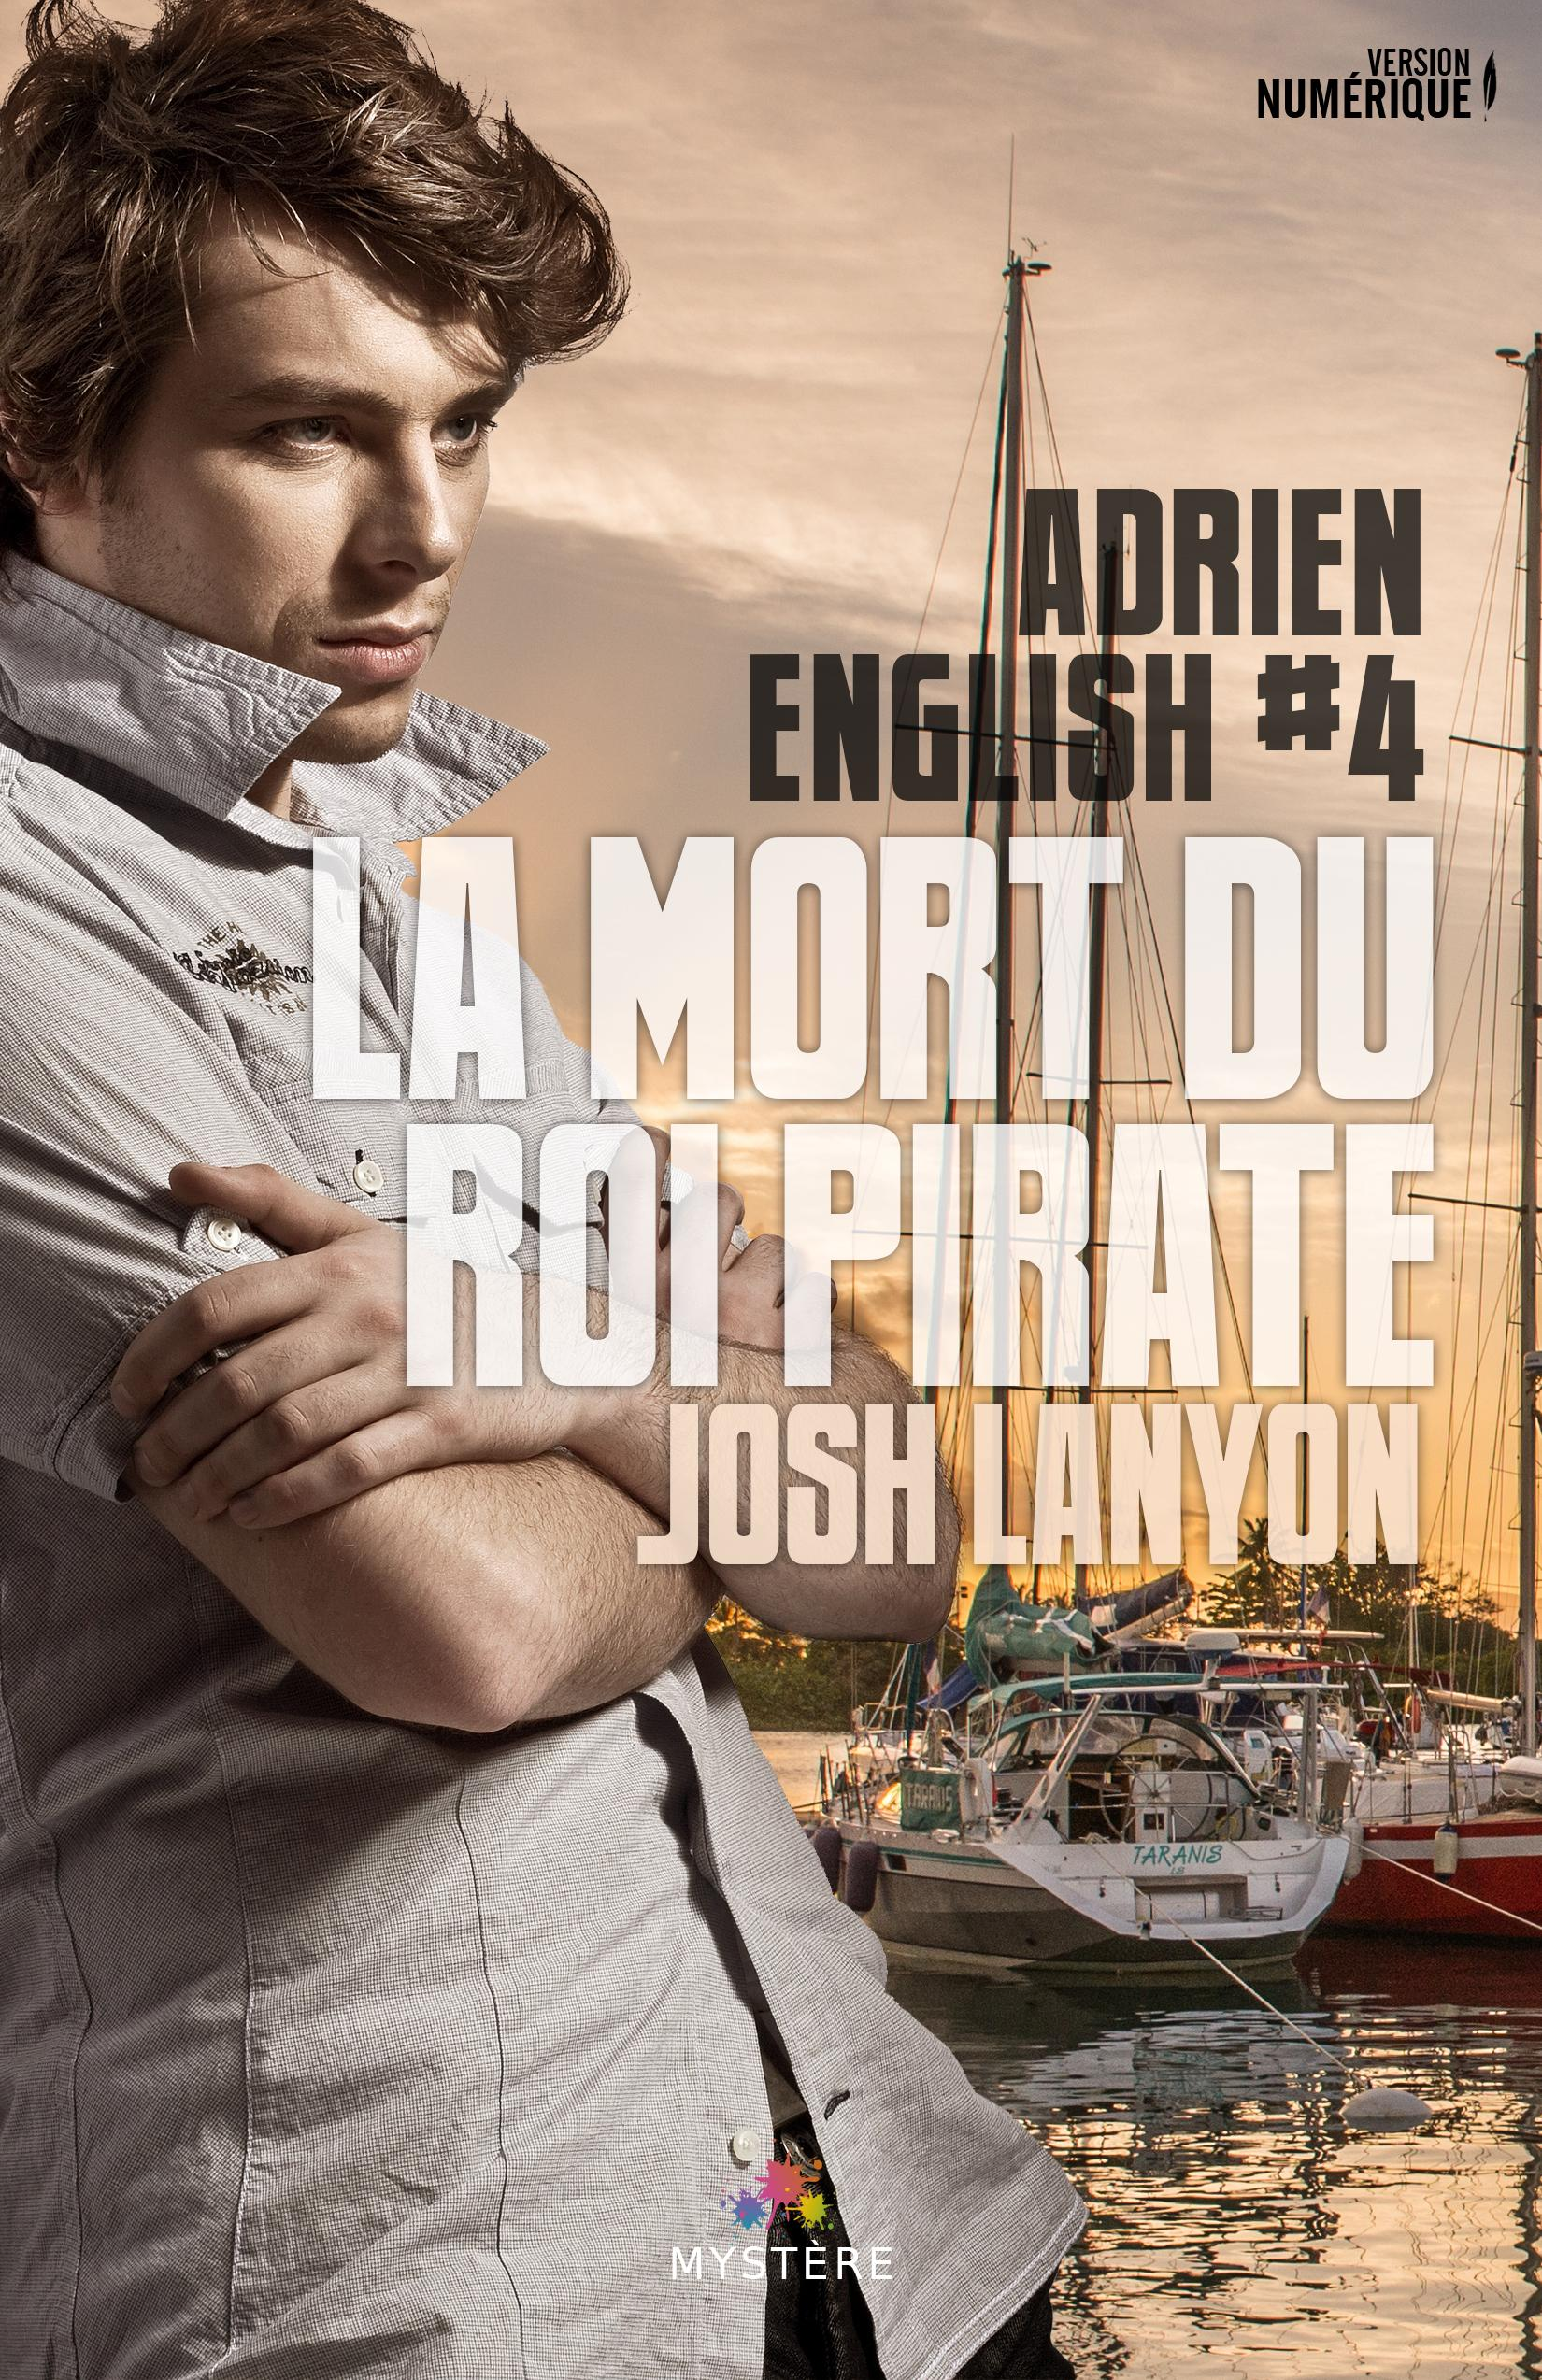 La mort du roi pirate, ADRIEN ENGLISH, T4